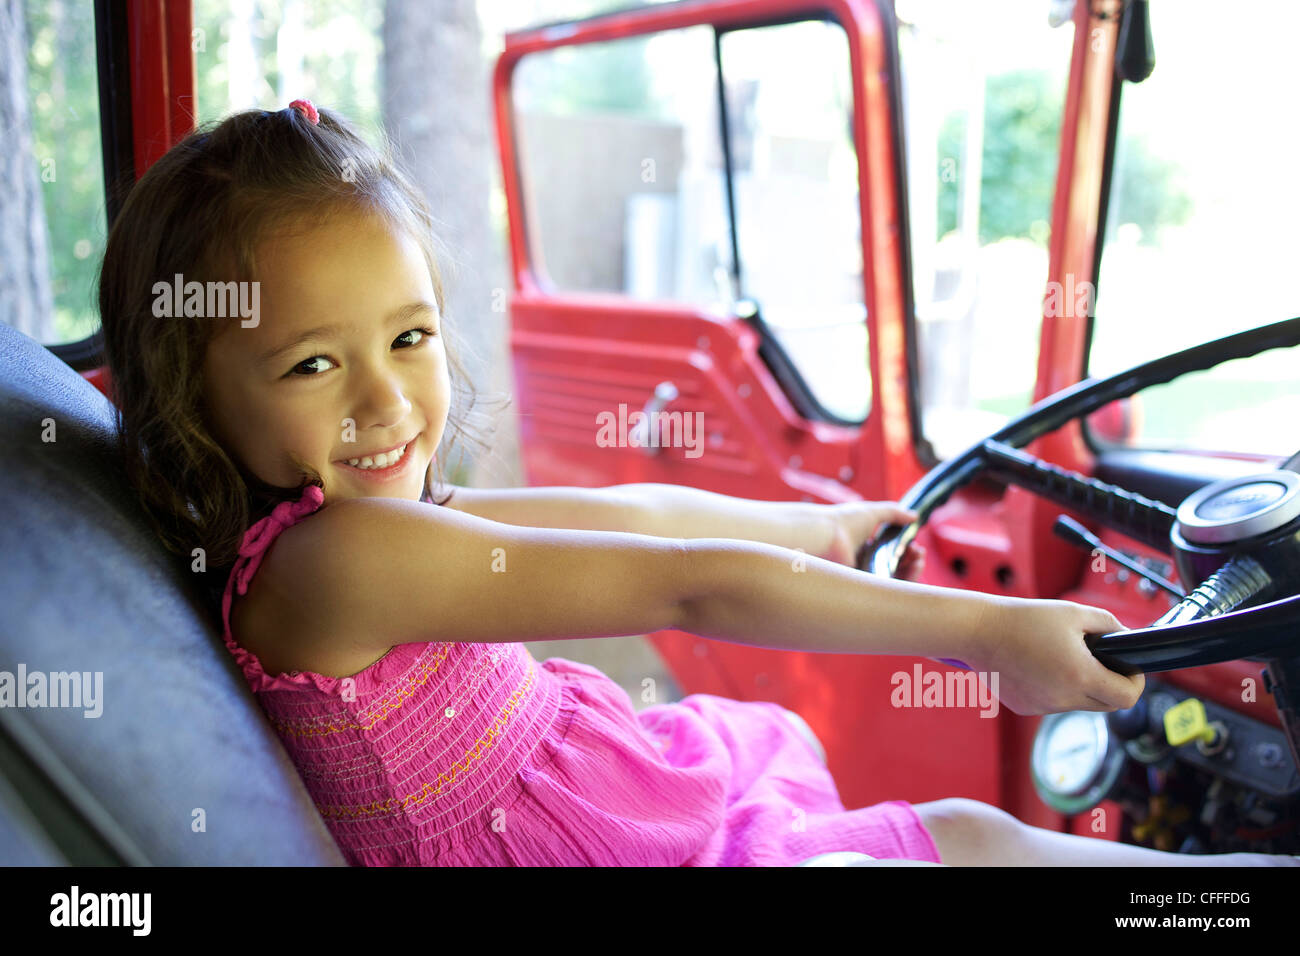 A young girl plays with the steering wheel of a car. - Stock Image